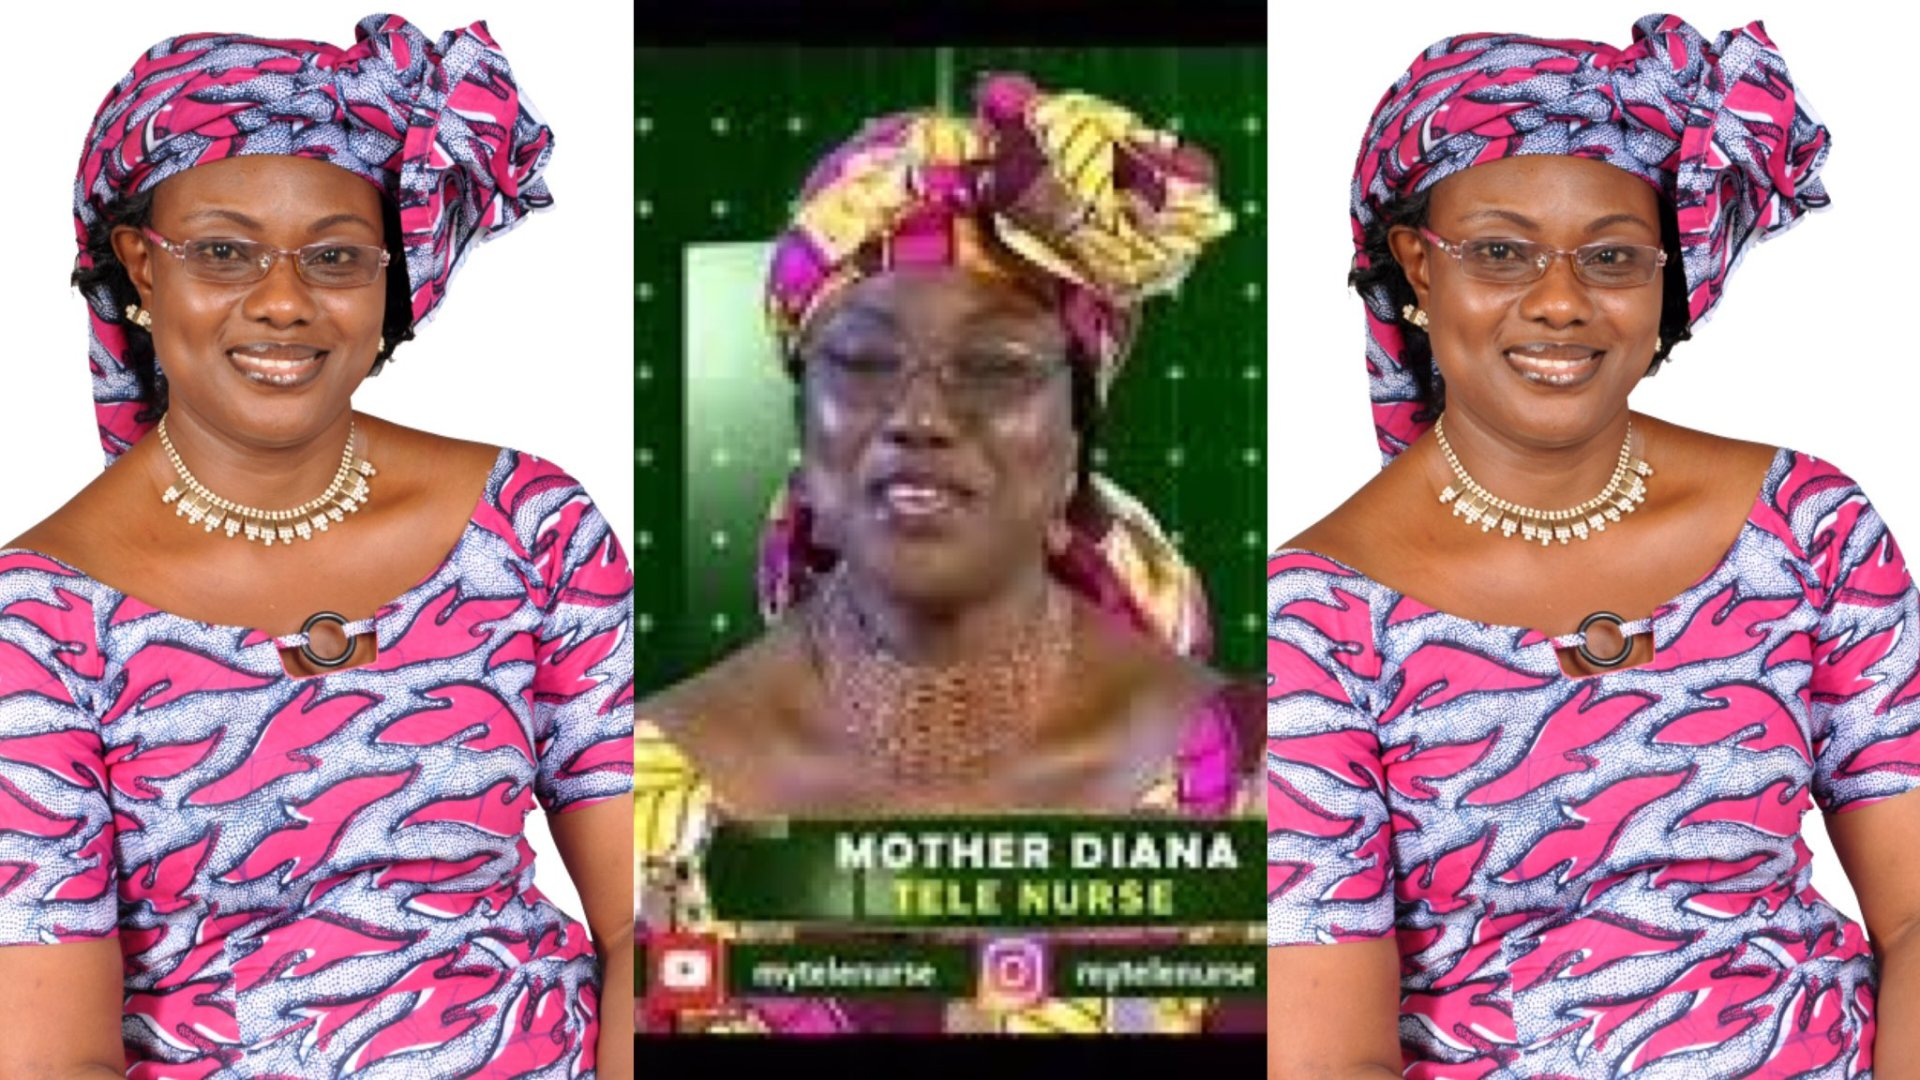 Meet Mother Diana: The least celebrated public health educator in Ghana who has been serving Ghanaians as Telenurse for 9 years